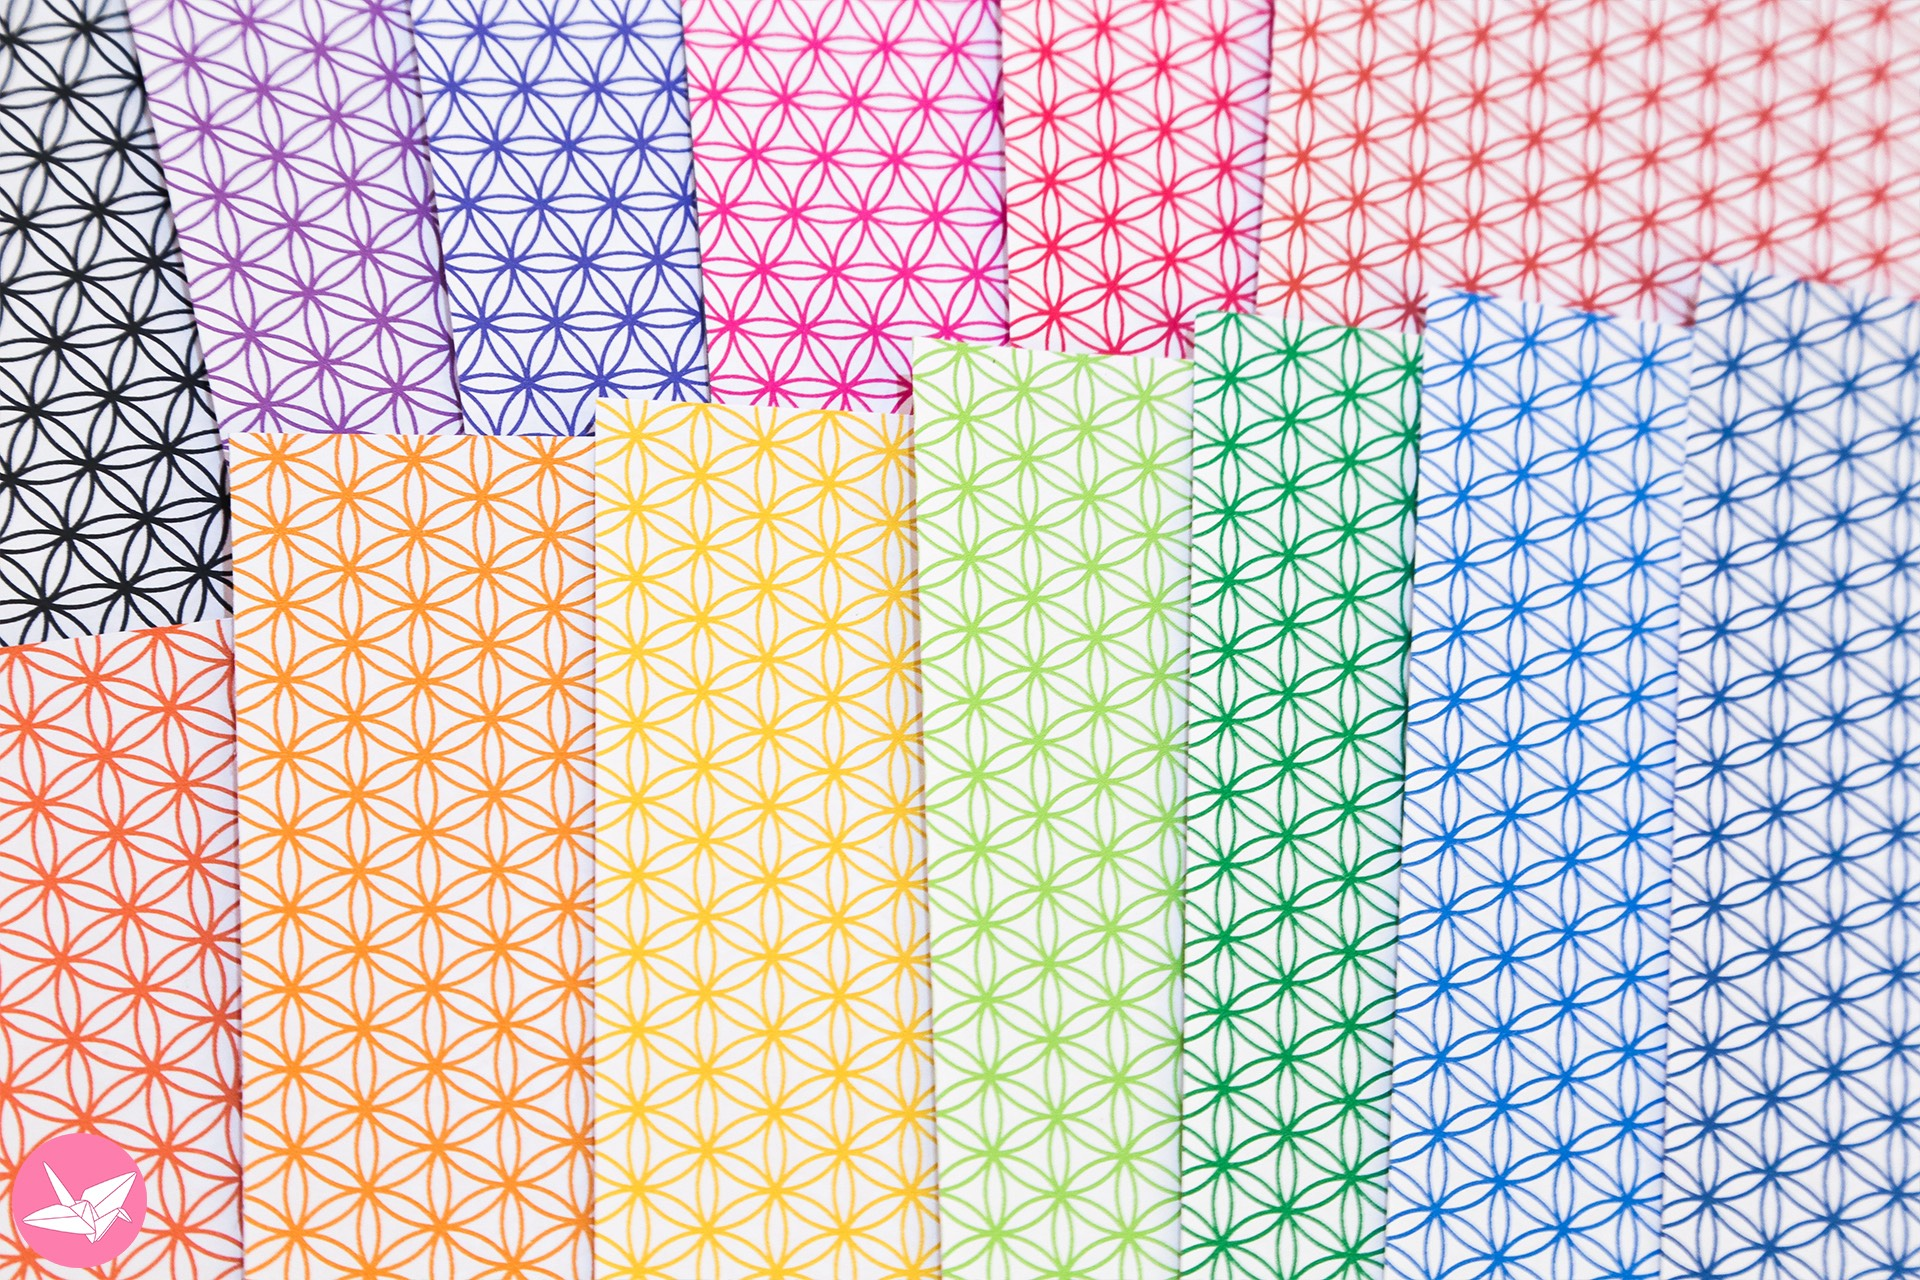 Flower Of Life Pattern Papers - Bright Lines - Paper ... - photo#38